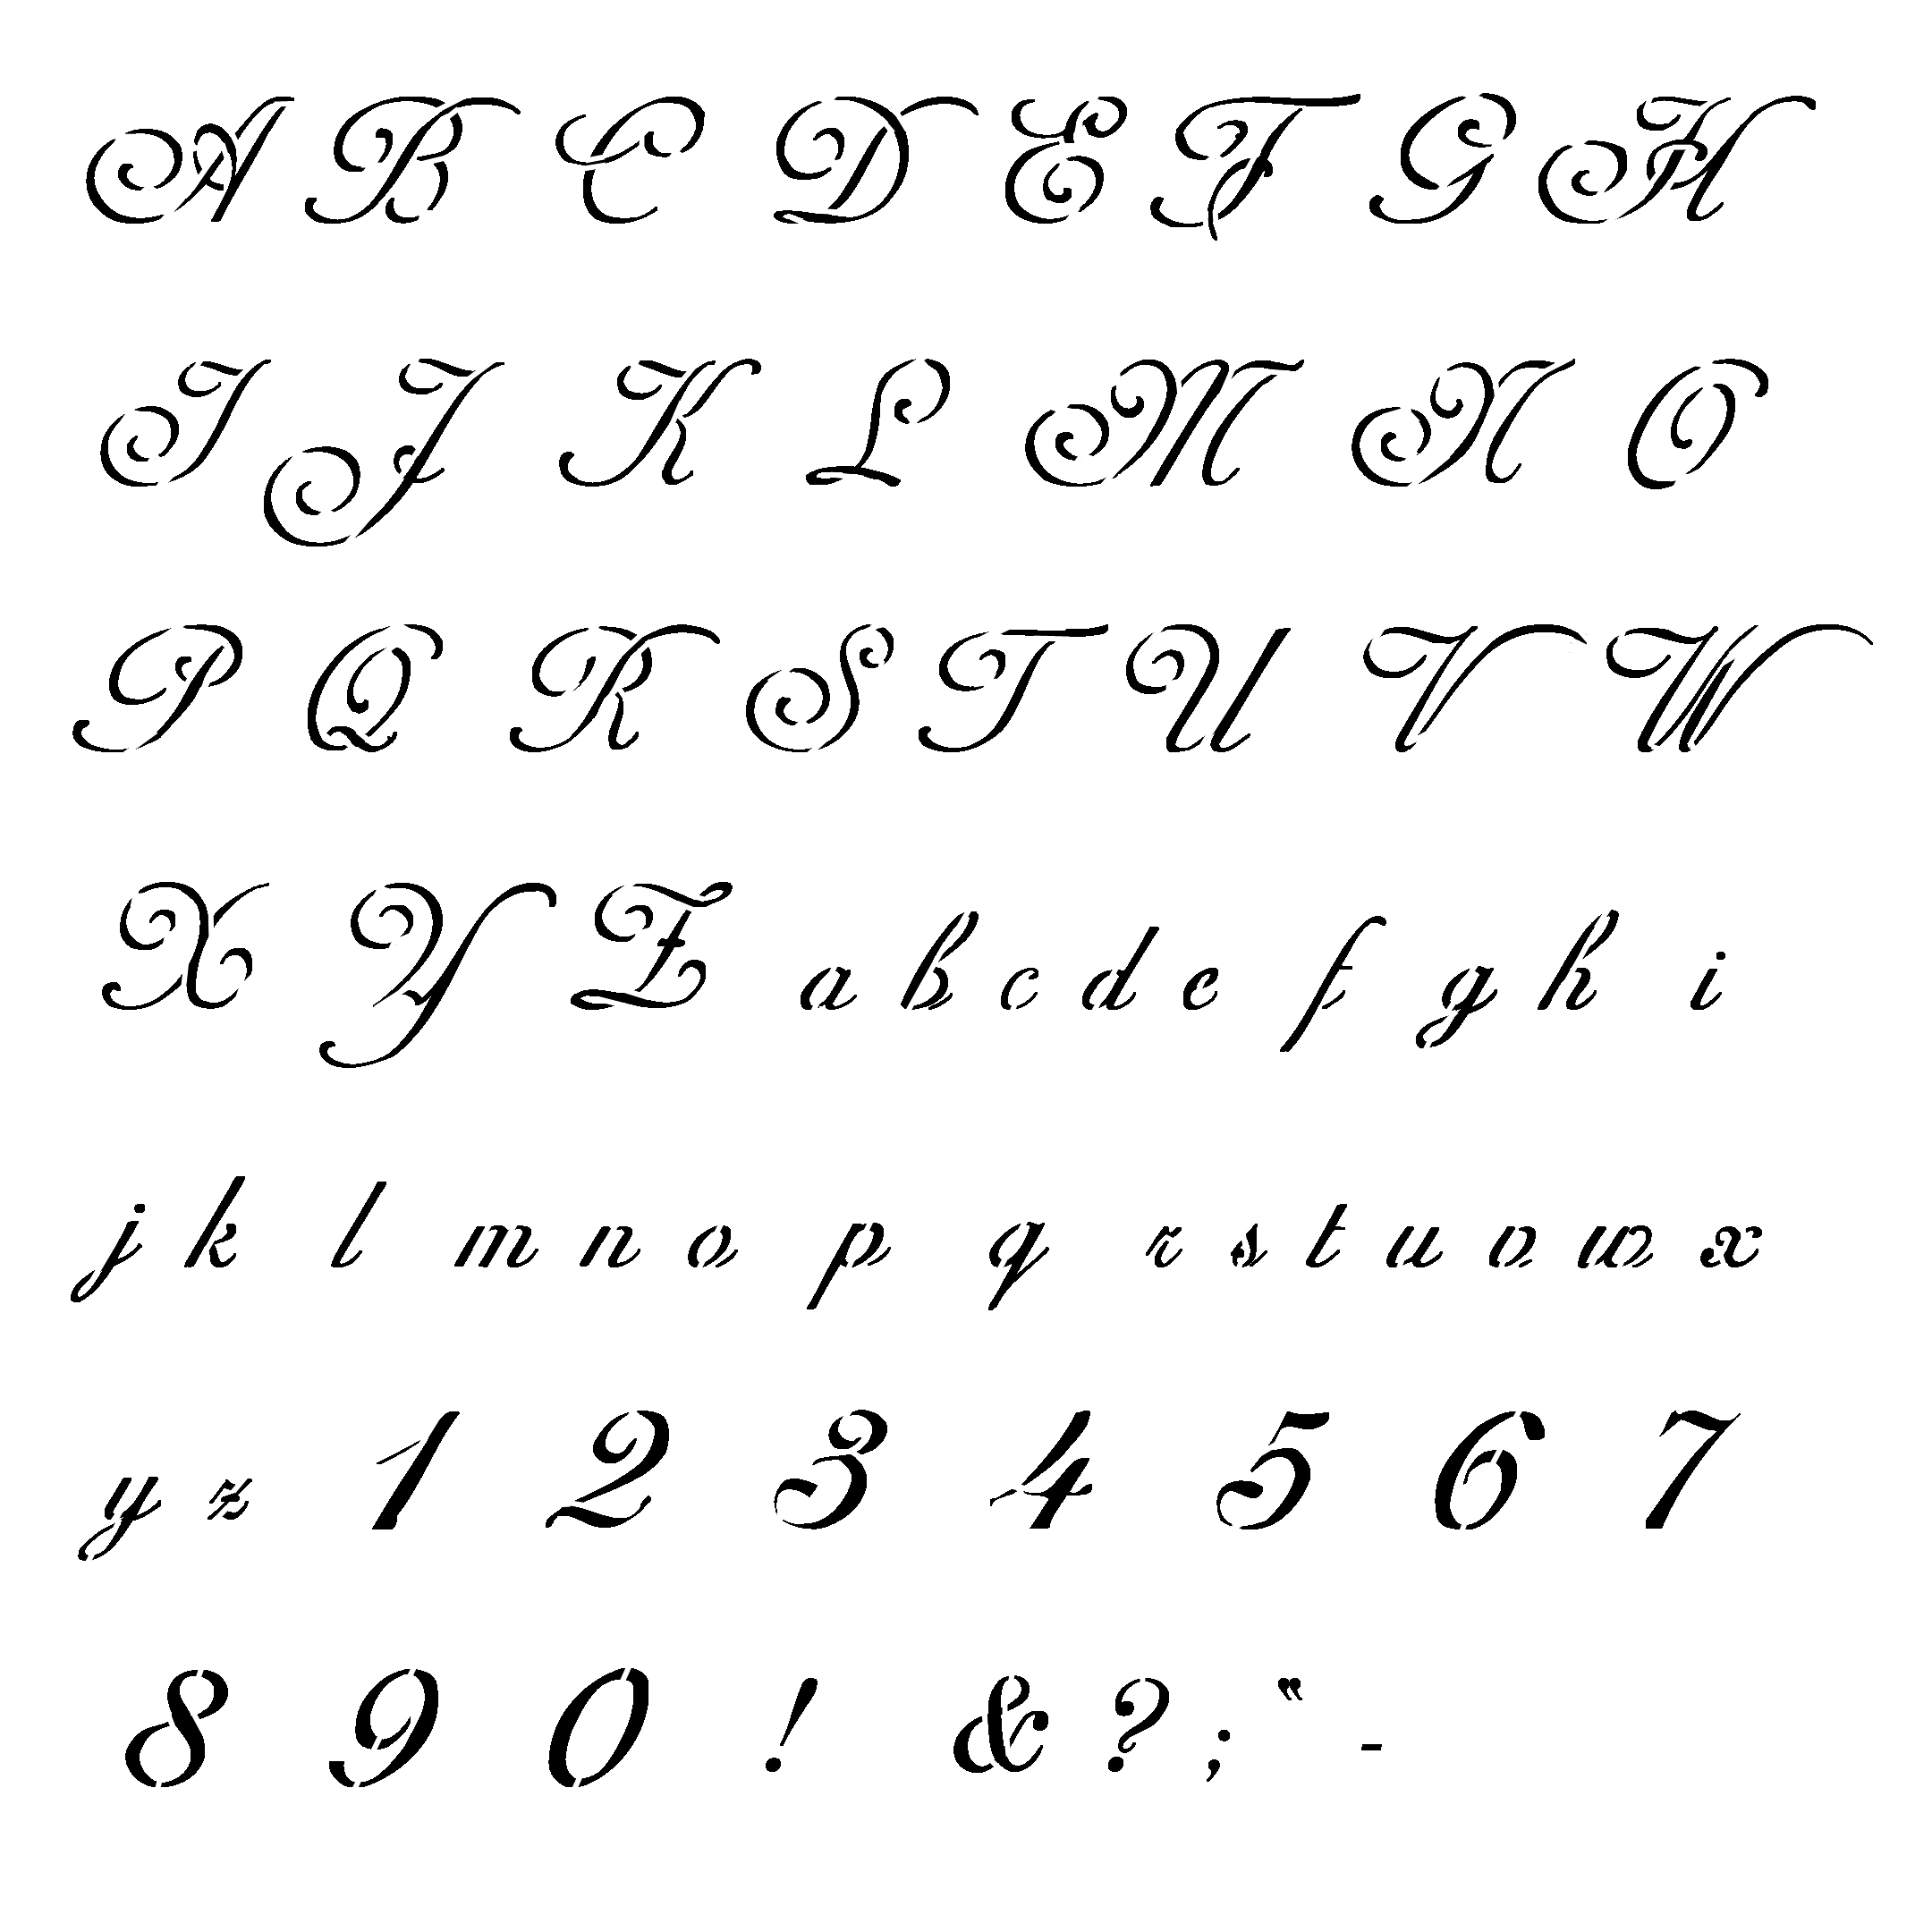 6 Stencil Embroidery Font Images - Free Printable Monogram Letter - Free Printable Fonts Stencils